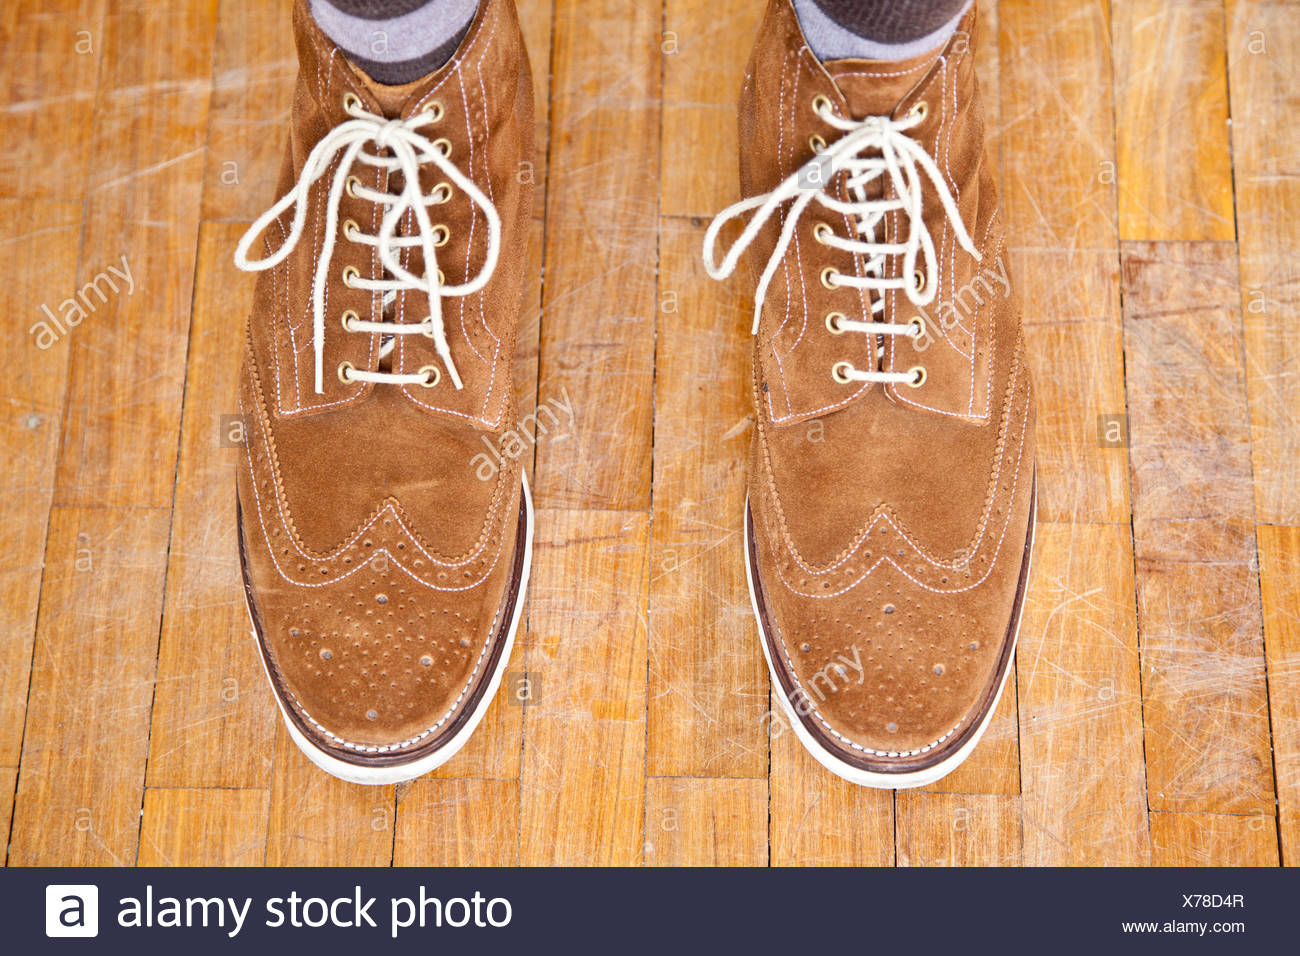 Close up of mans feet wearing suede boots - Stock Image